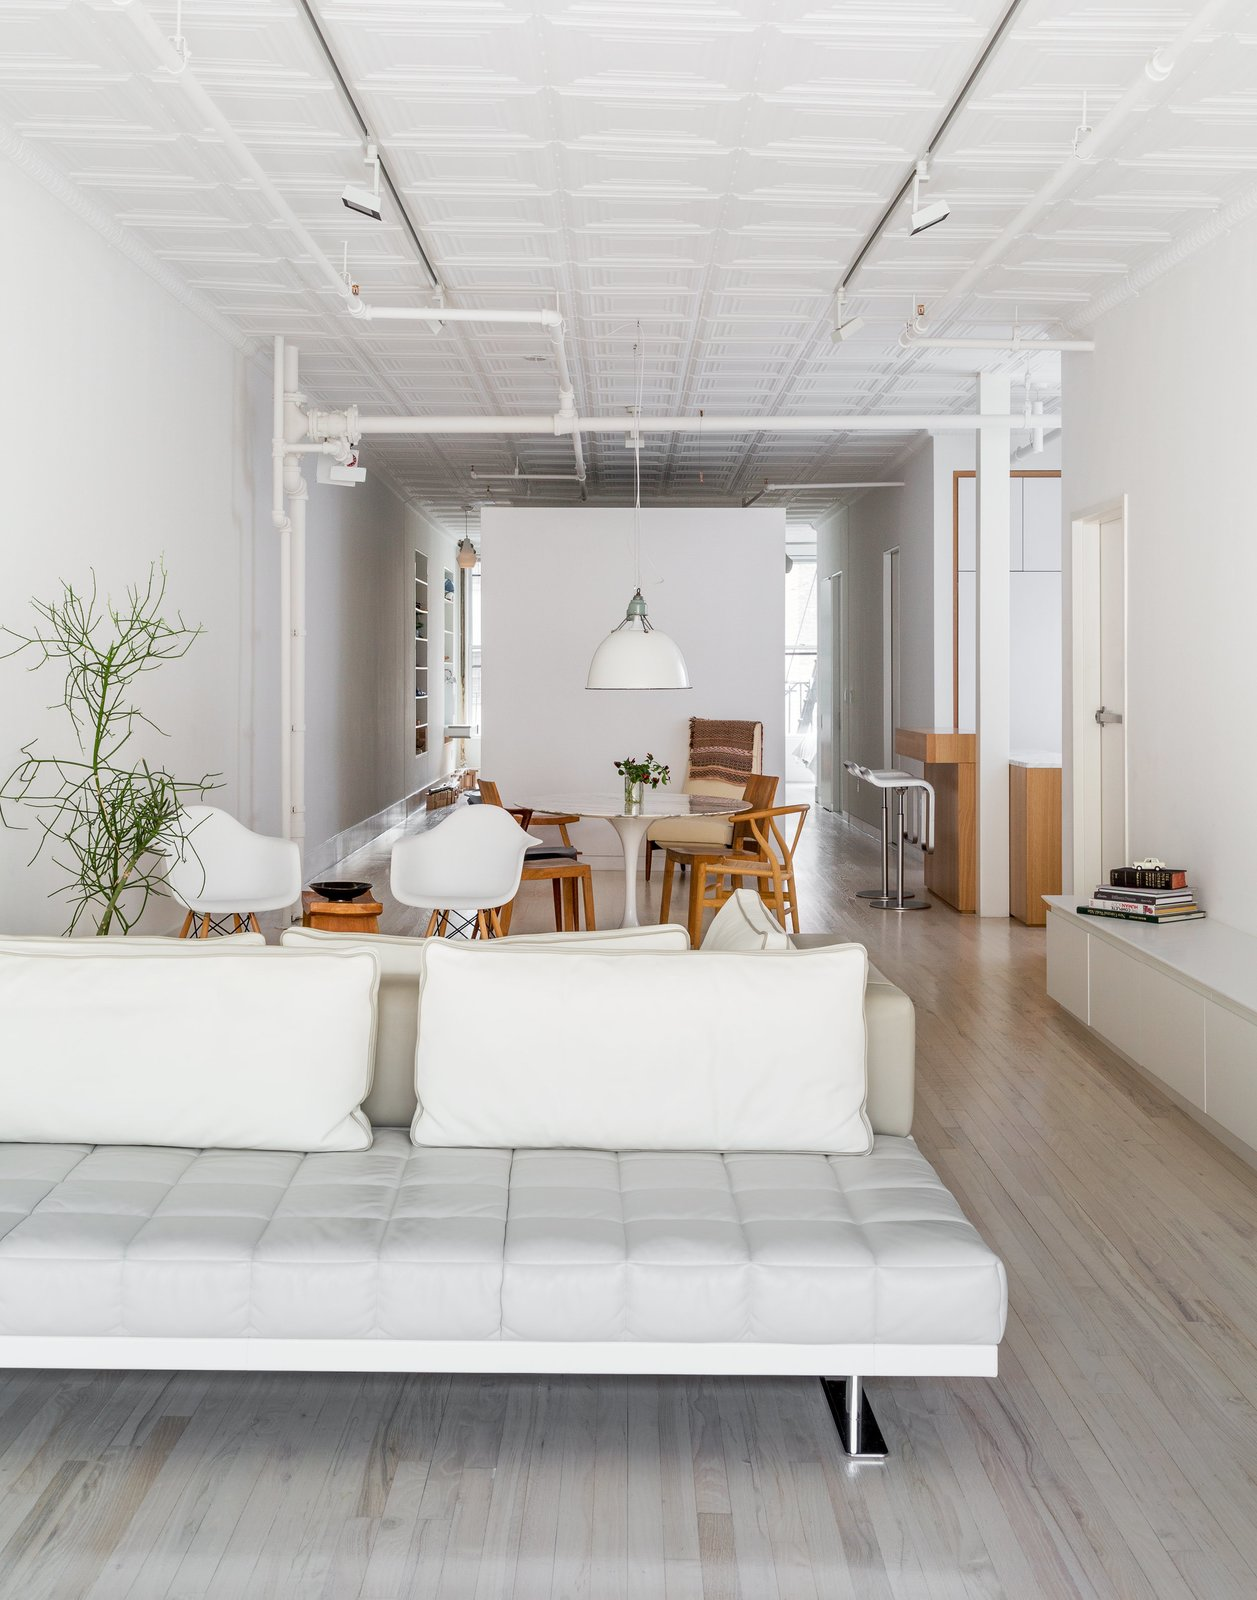 When a Manhattan family approached Frame Design Lab to create a more private master bedroom, they imagined the firm would simply rework a few closet walls. Instead, partners Nina Cook John and Anne-Marie Singer proposed a bold plan to divide the space by adding a 60-square-foot unit in the middle of the floor plan to reorganize the flow.